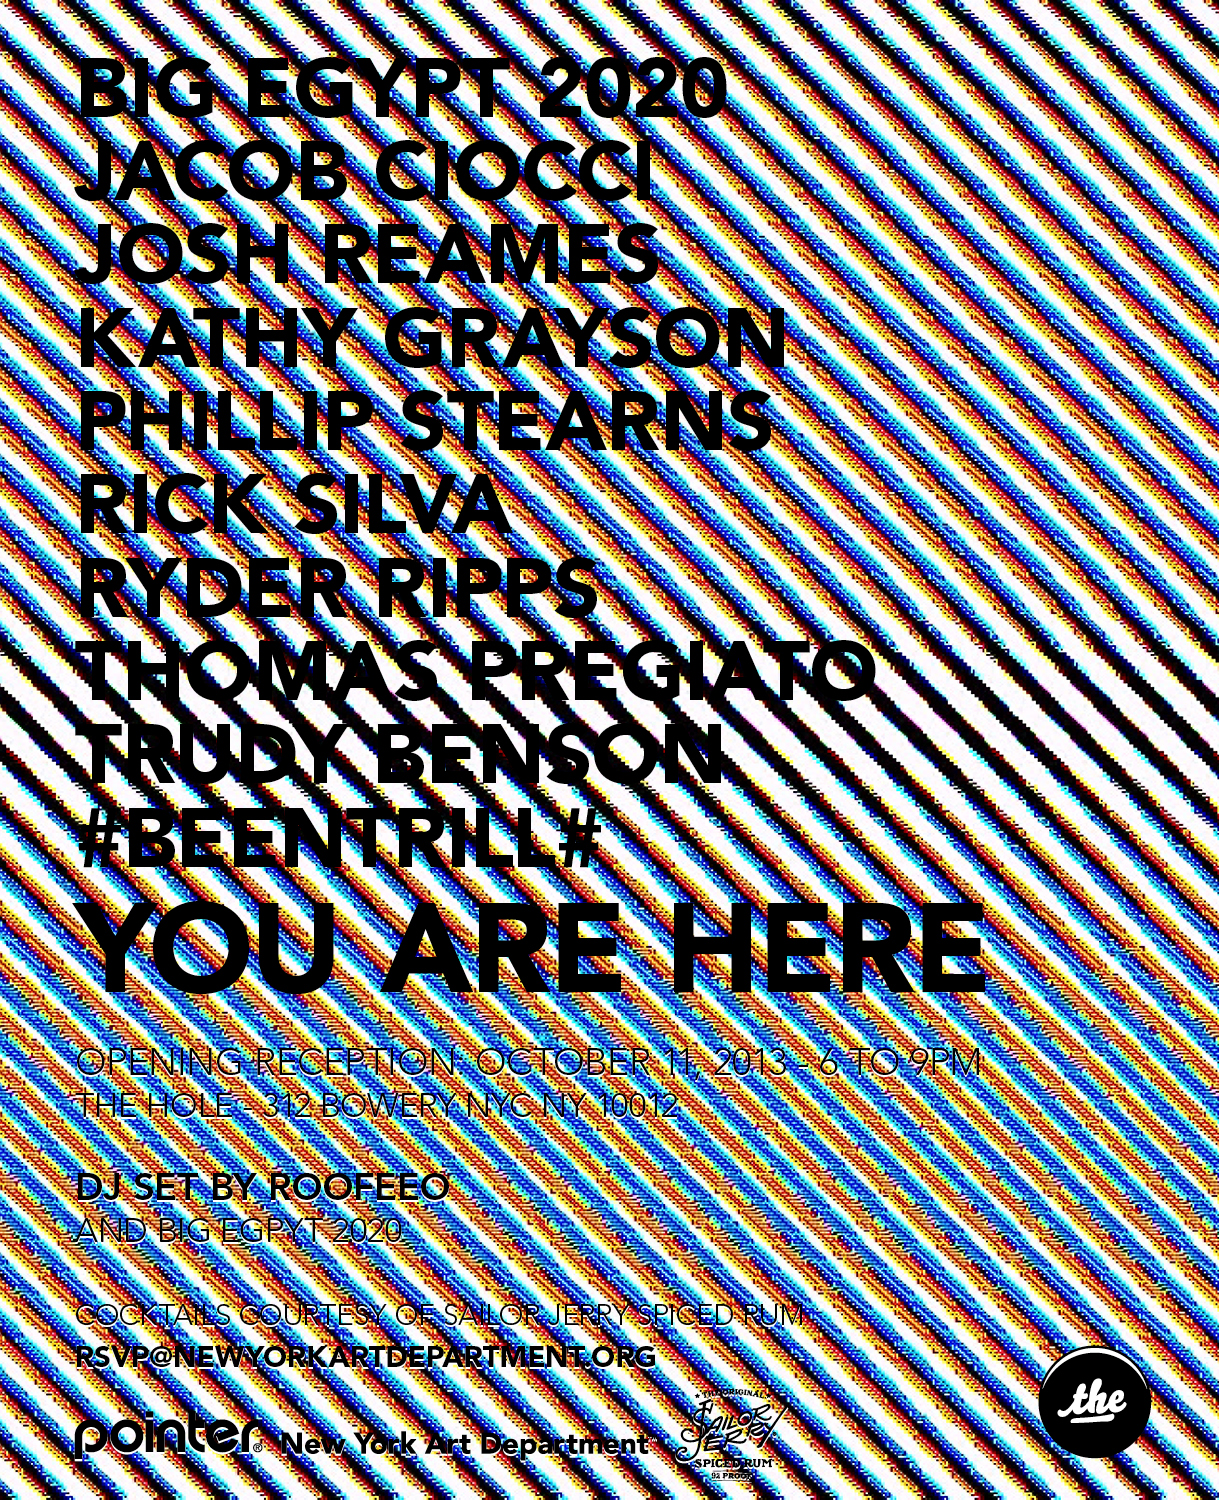 YOU ARE HERE INVITE_NEW_2.jpg